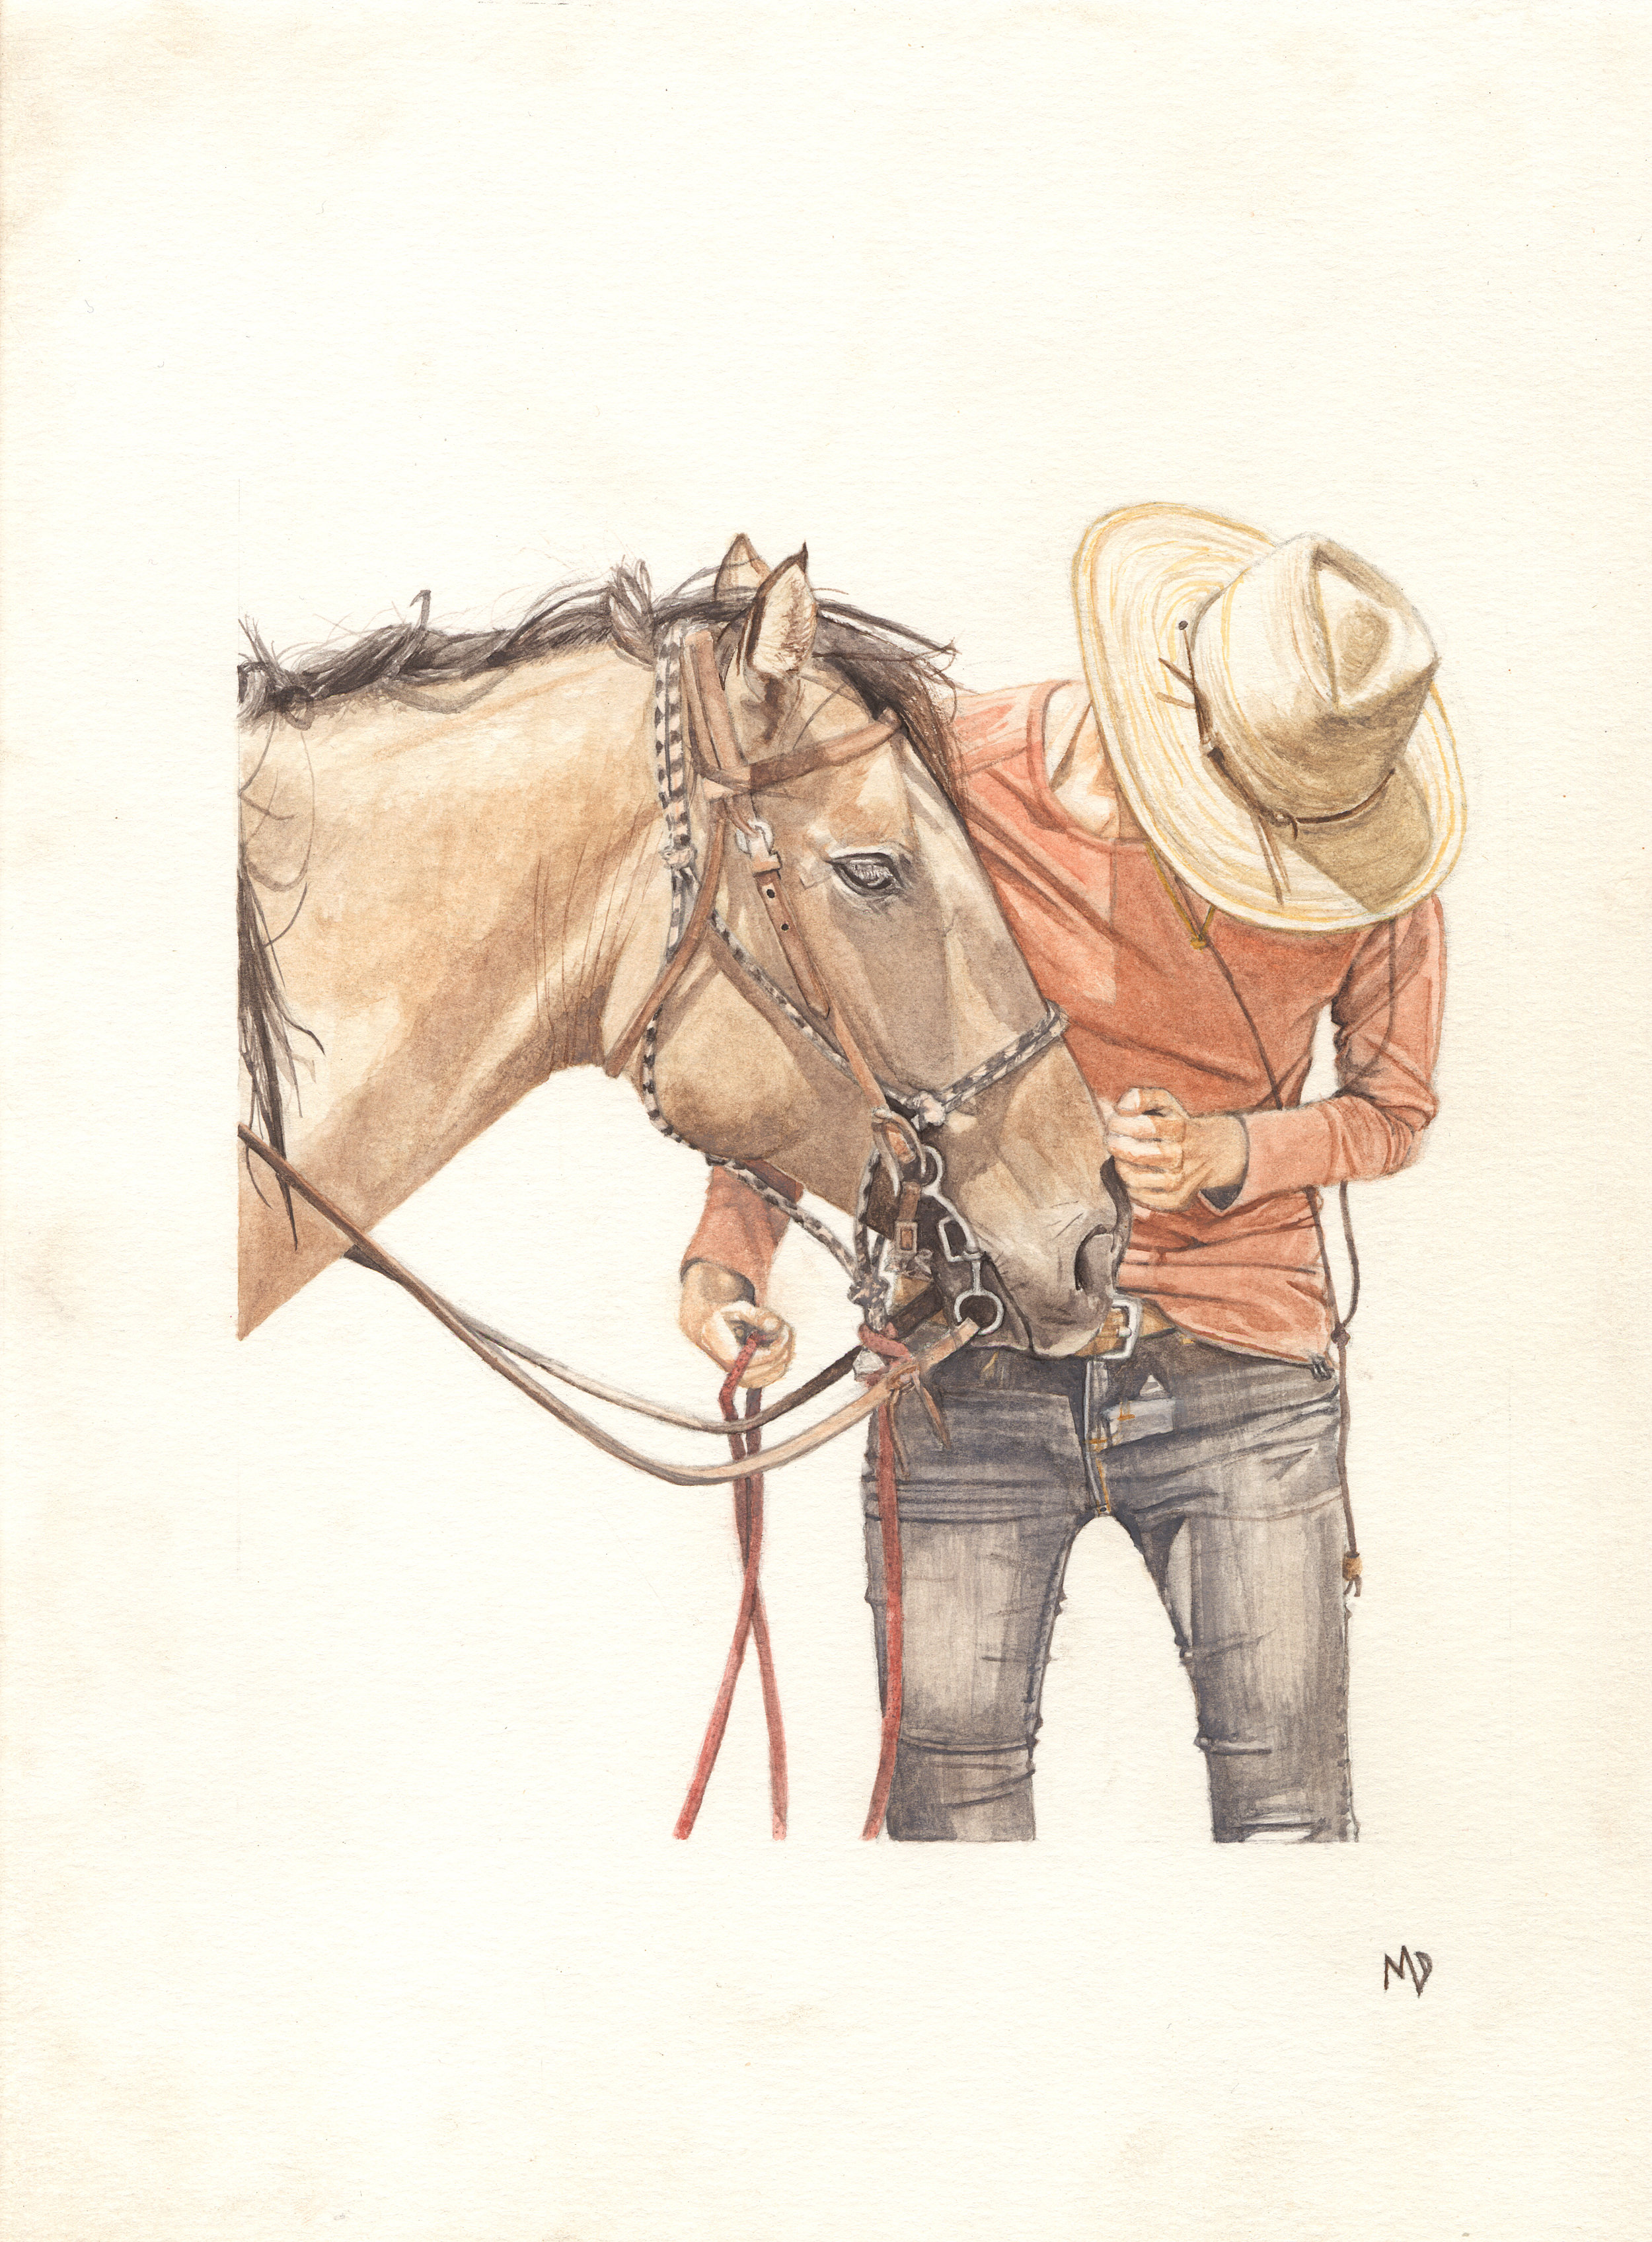 moxie | 8 x 10 inches | watercolor on paper | private collection